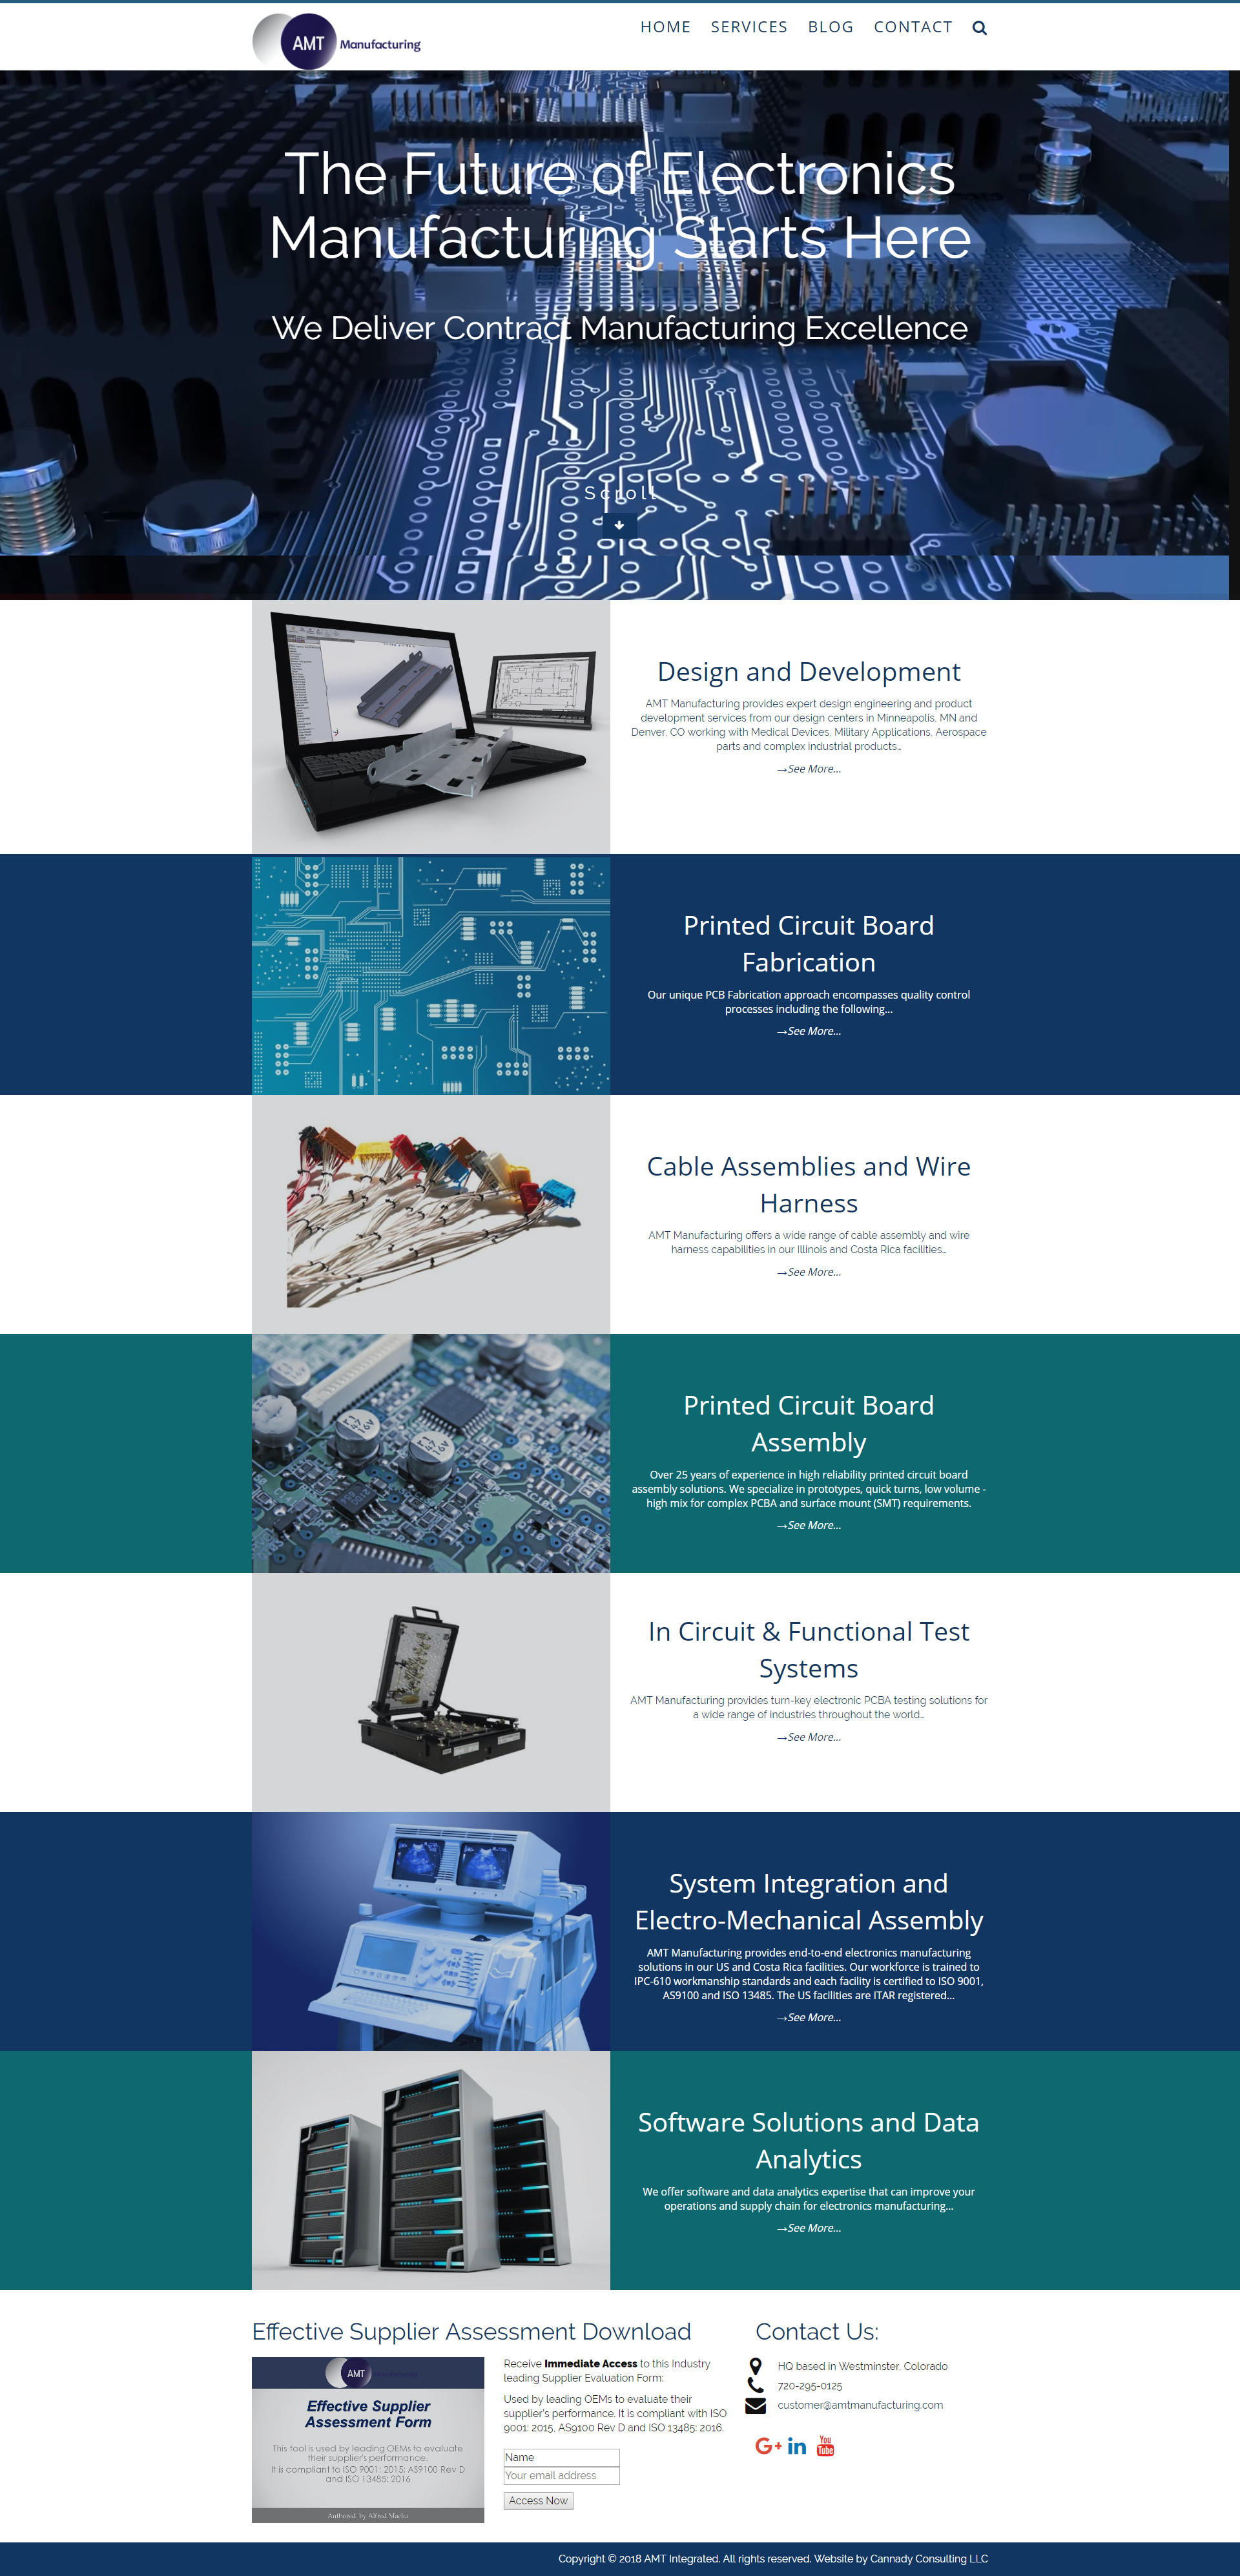 Manufacturing web design by Veronica Cannady